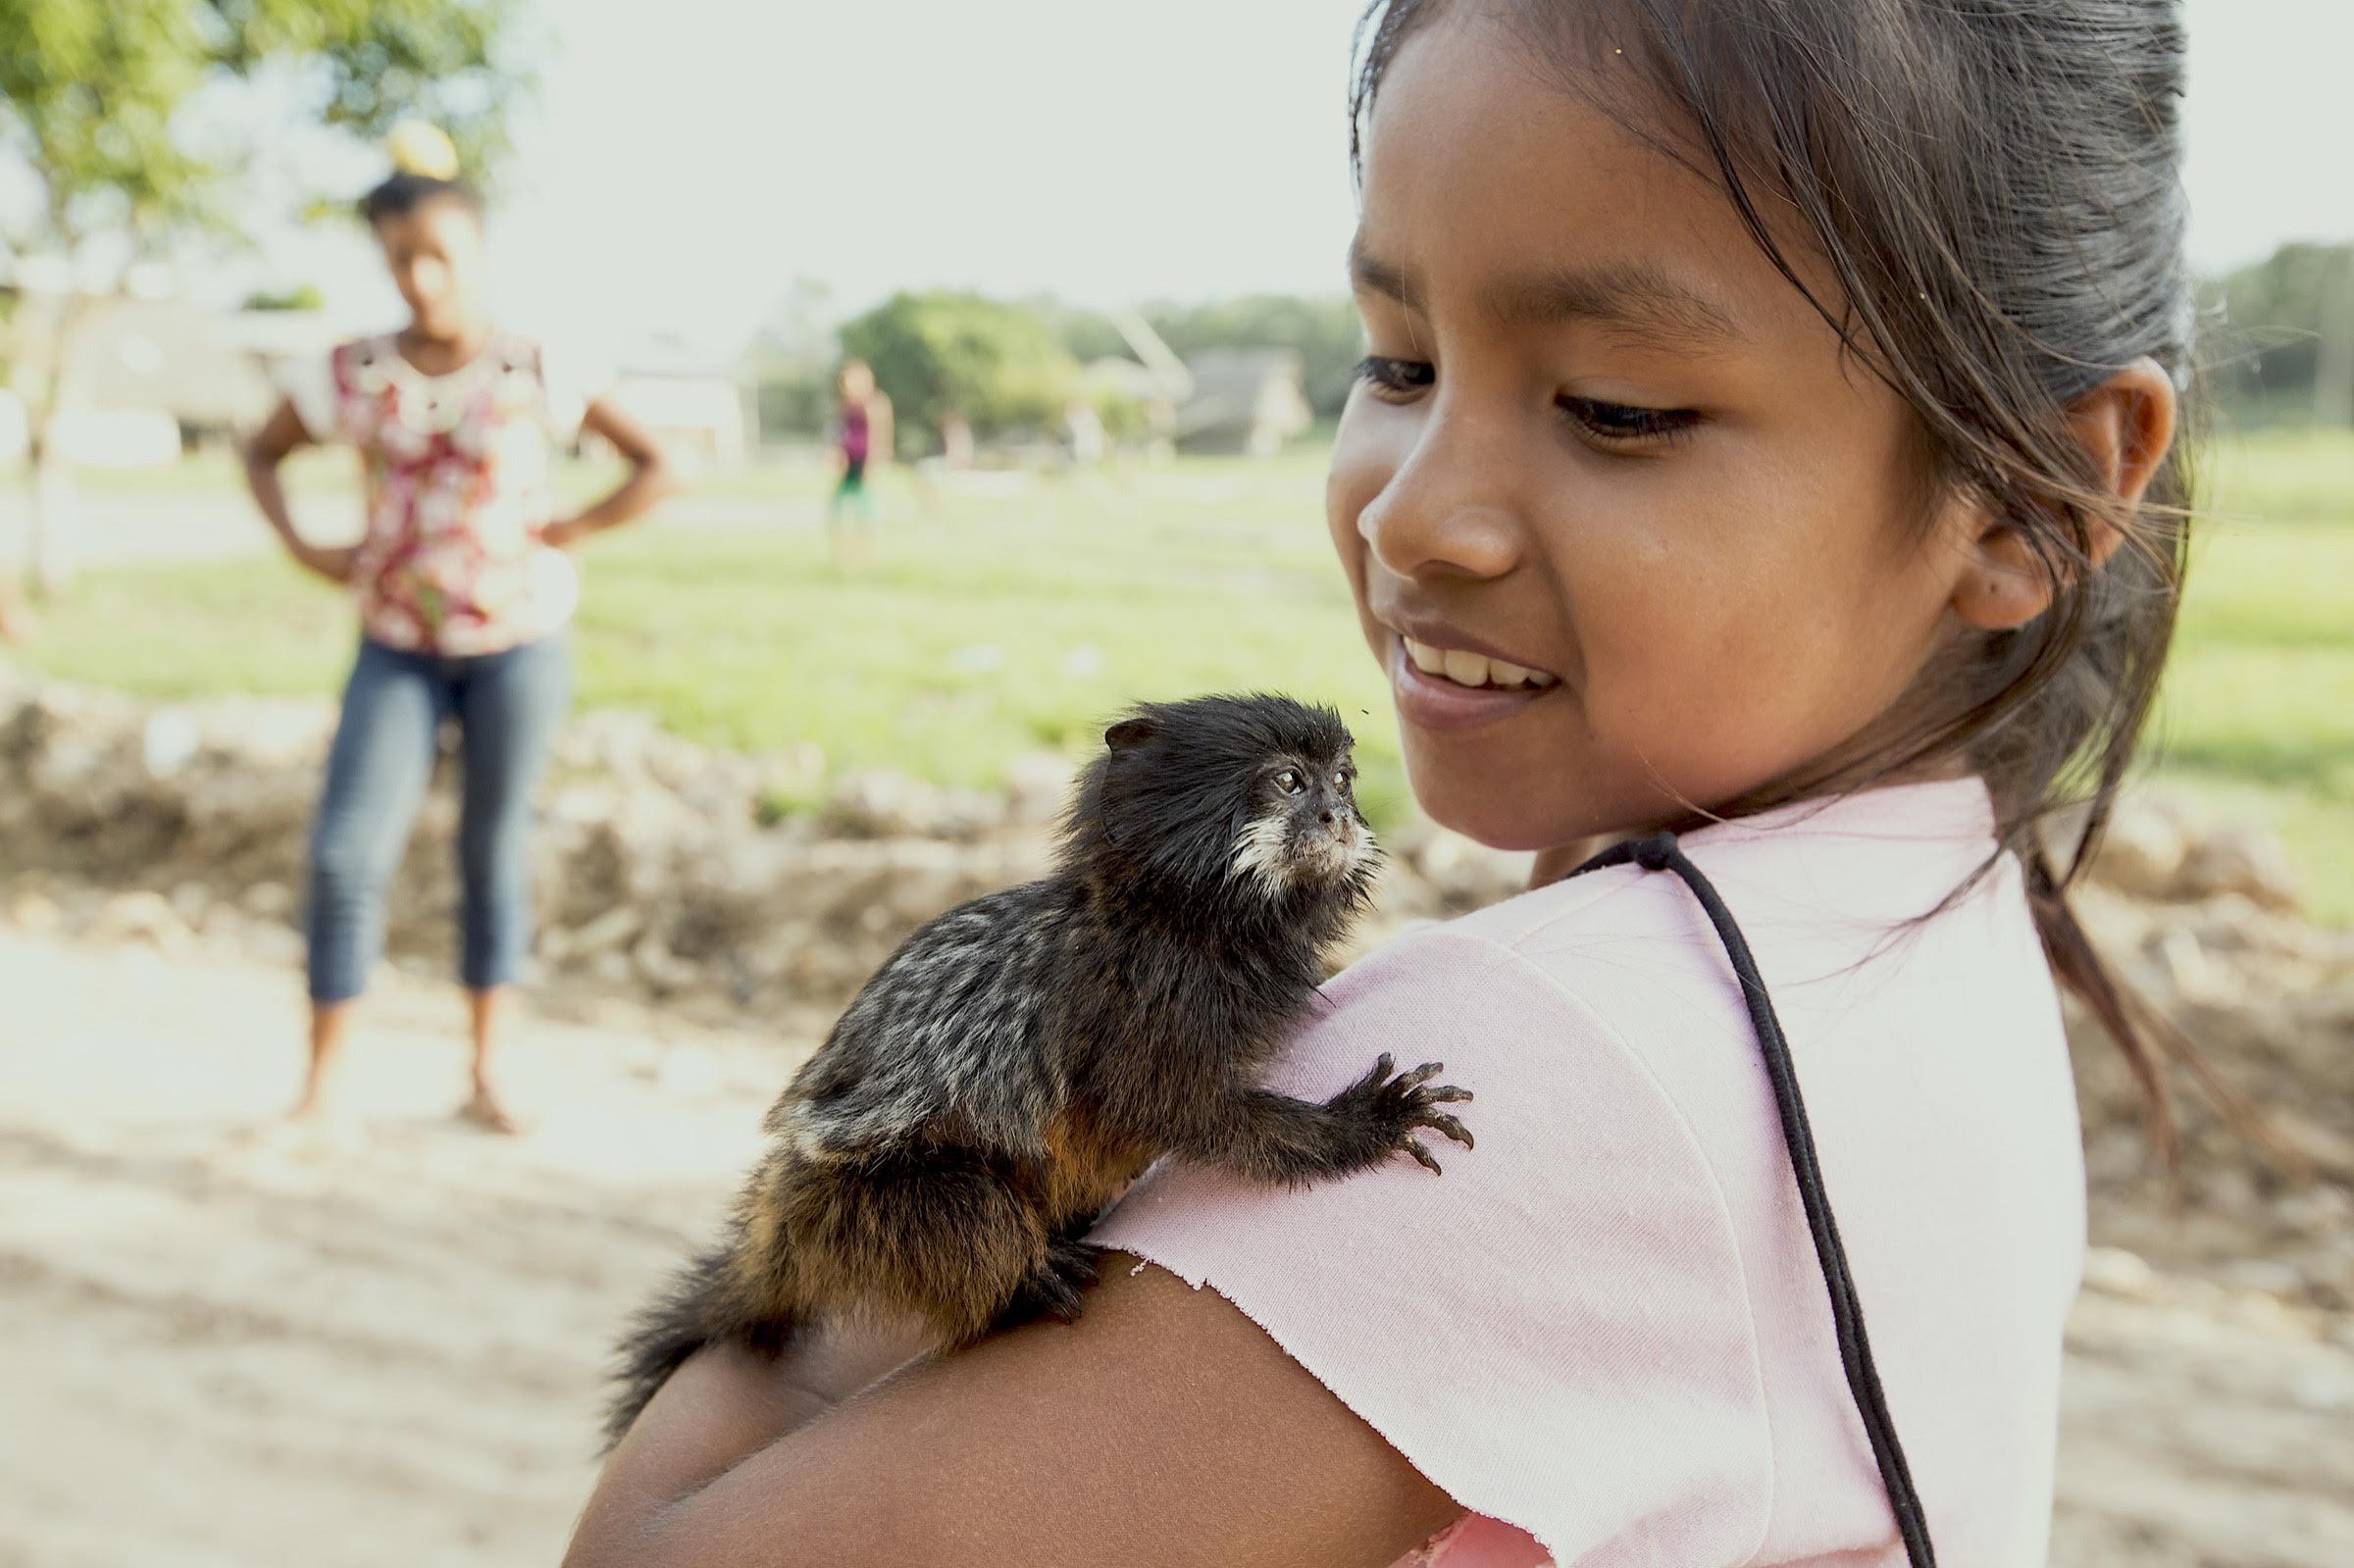 A young girl in Pueblo Libre proudly shows off her pet monkey.